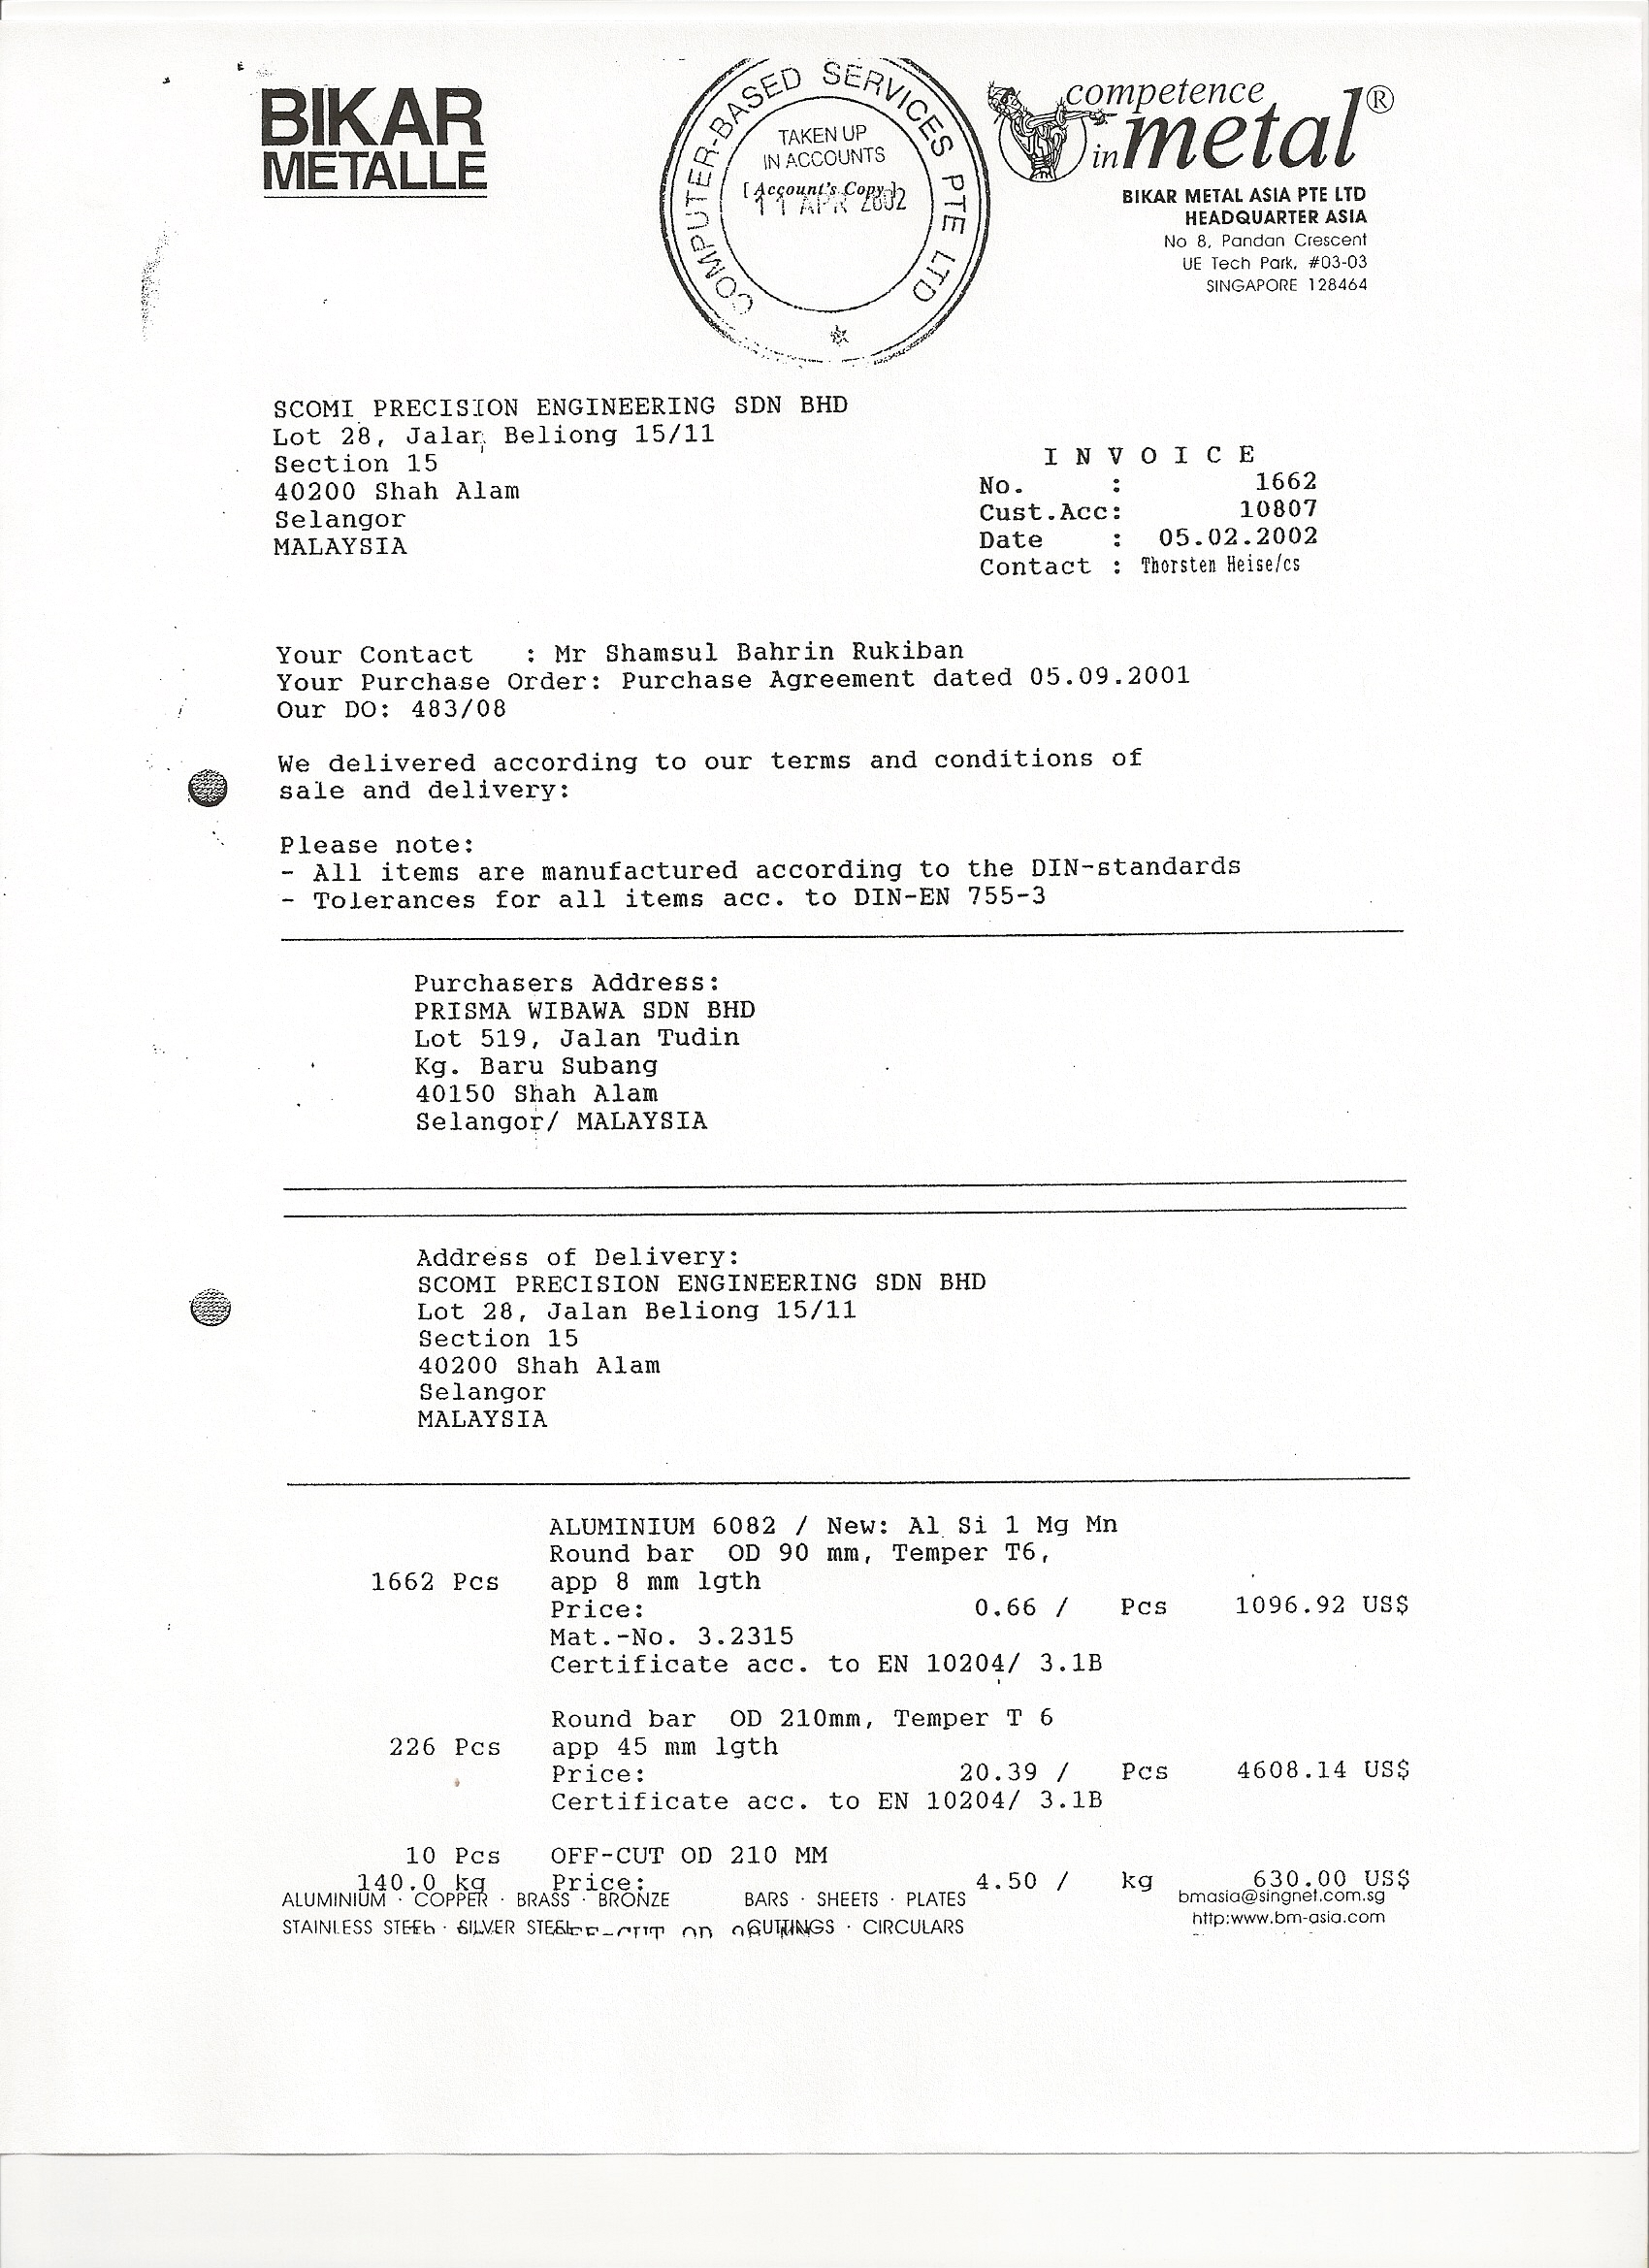 Computer Science asme forms word format